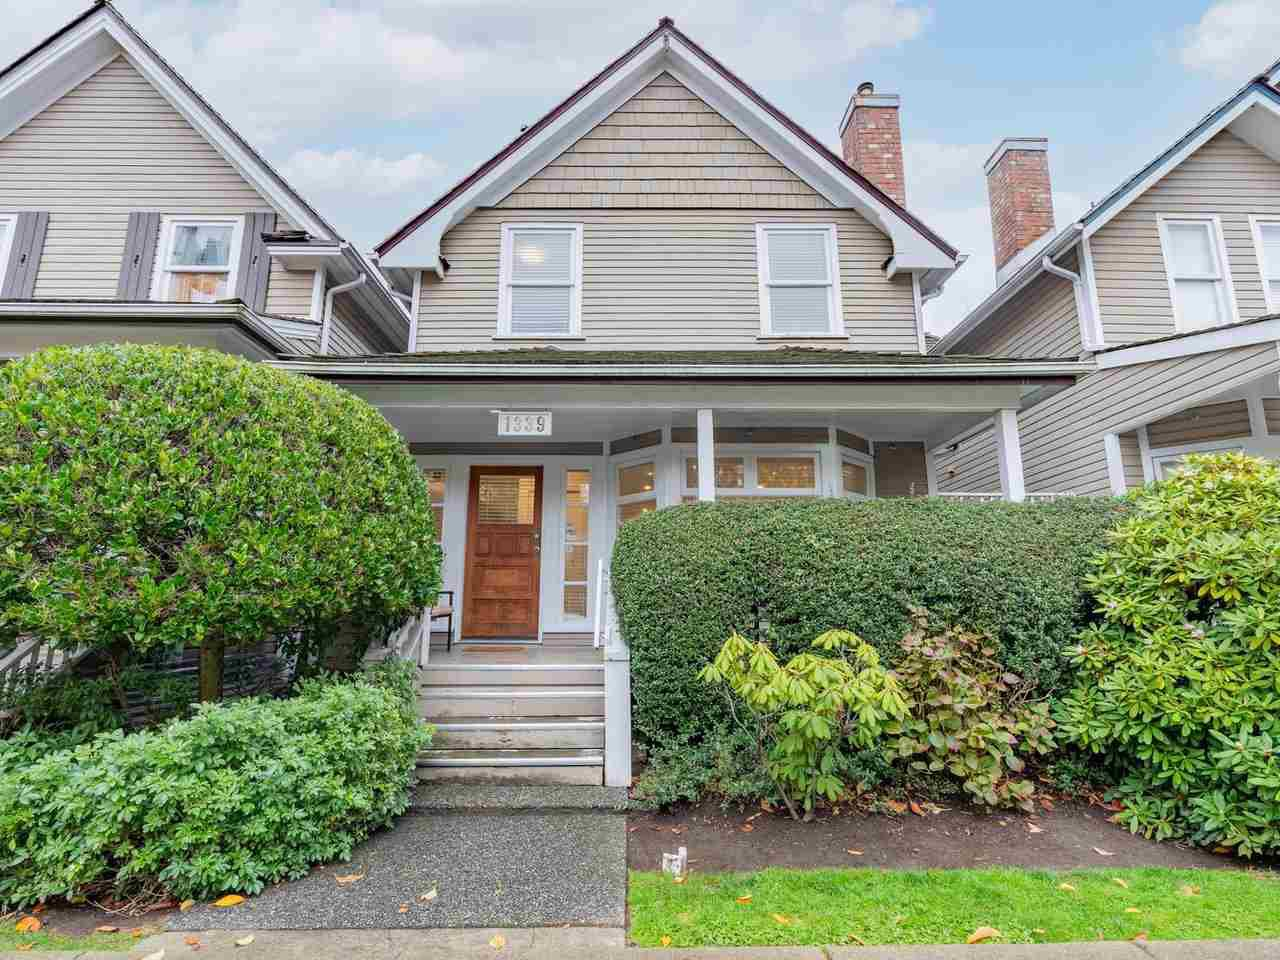 Main Photo: 1339 W 7TH Avenue in Vancouver: Fairview VW Townhouse for sale (Vancouver West)  : MLS®# R2517626